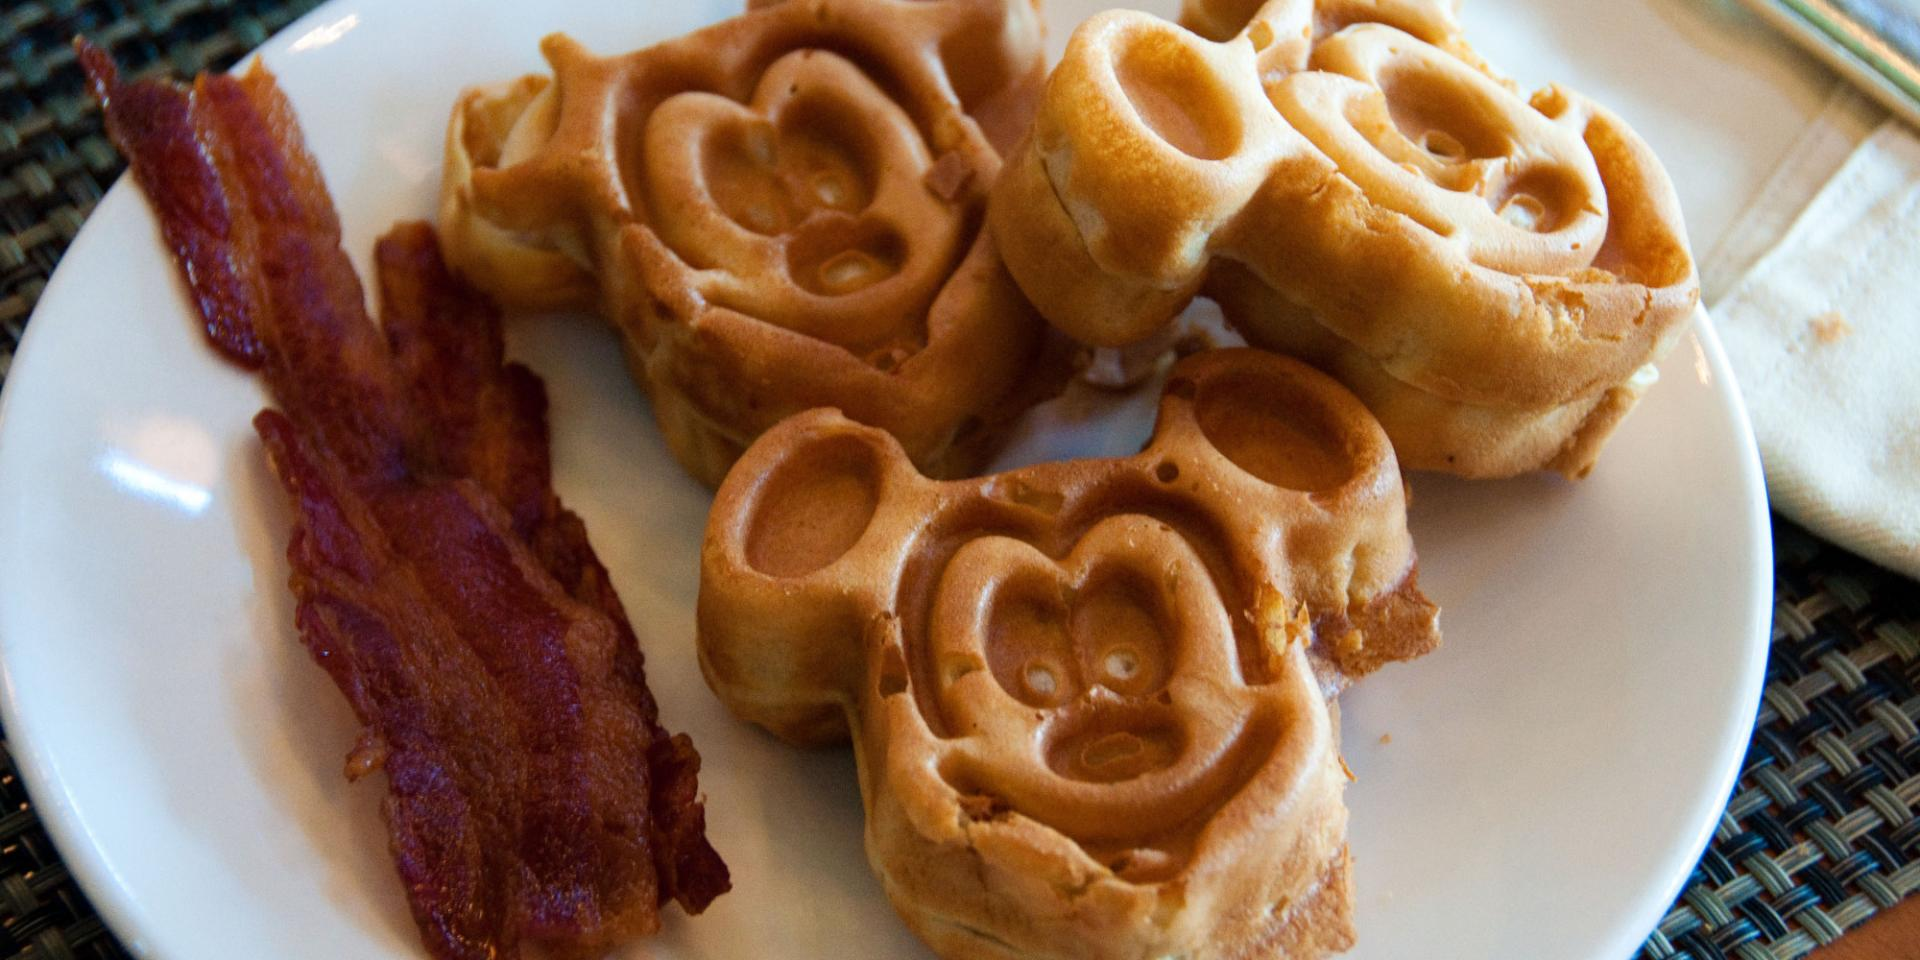 o-DISNEY-FOOD-facebook